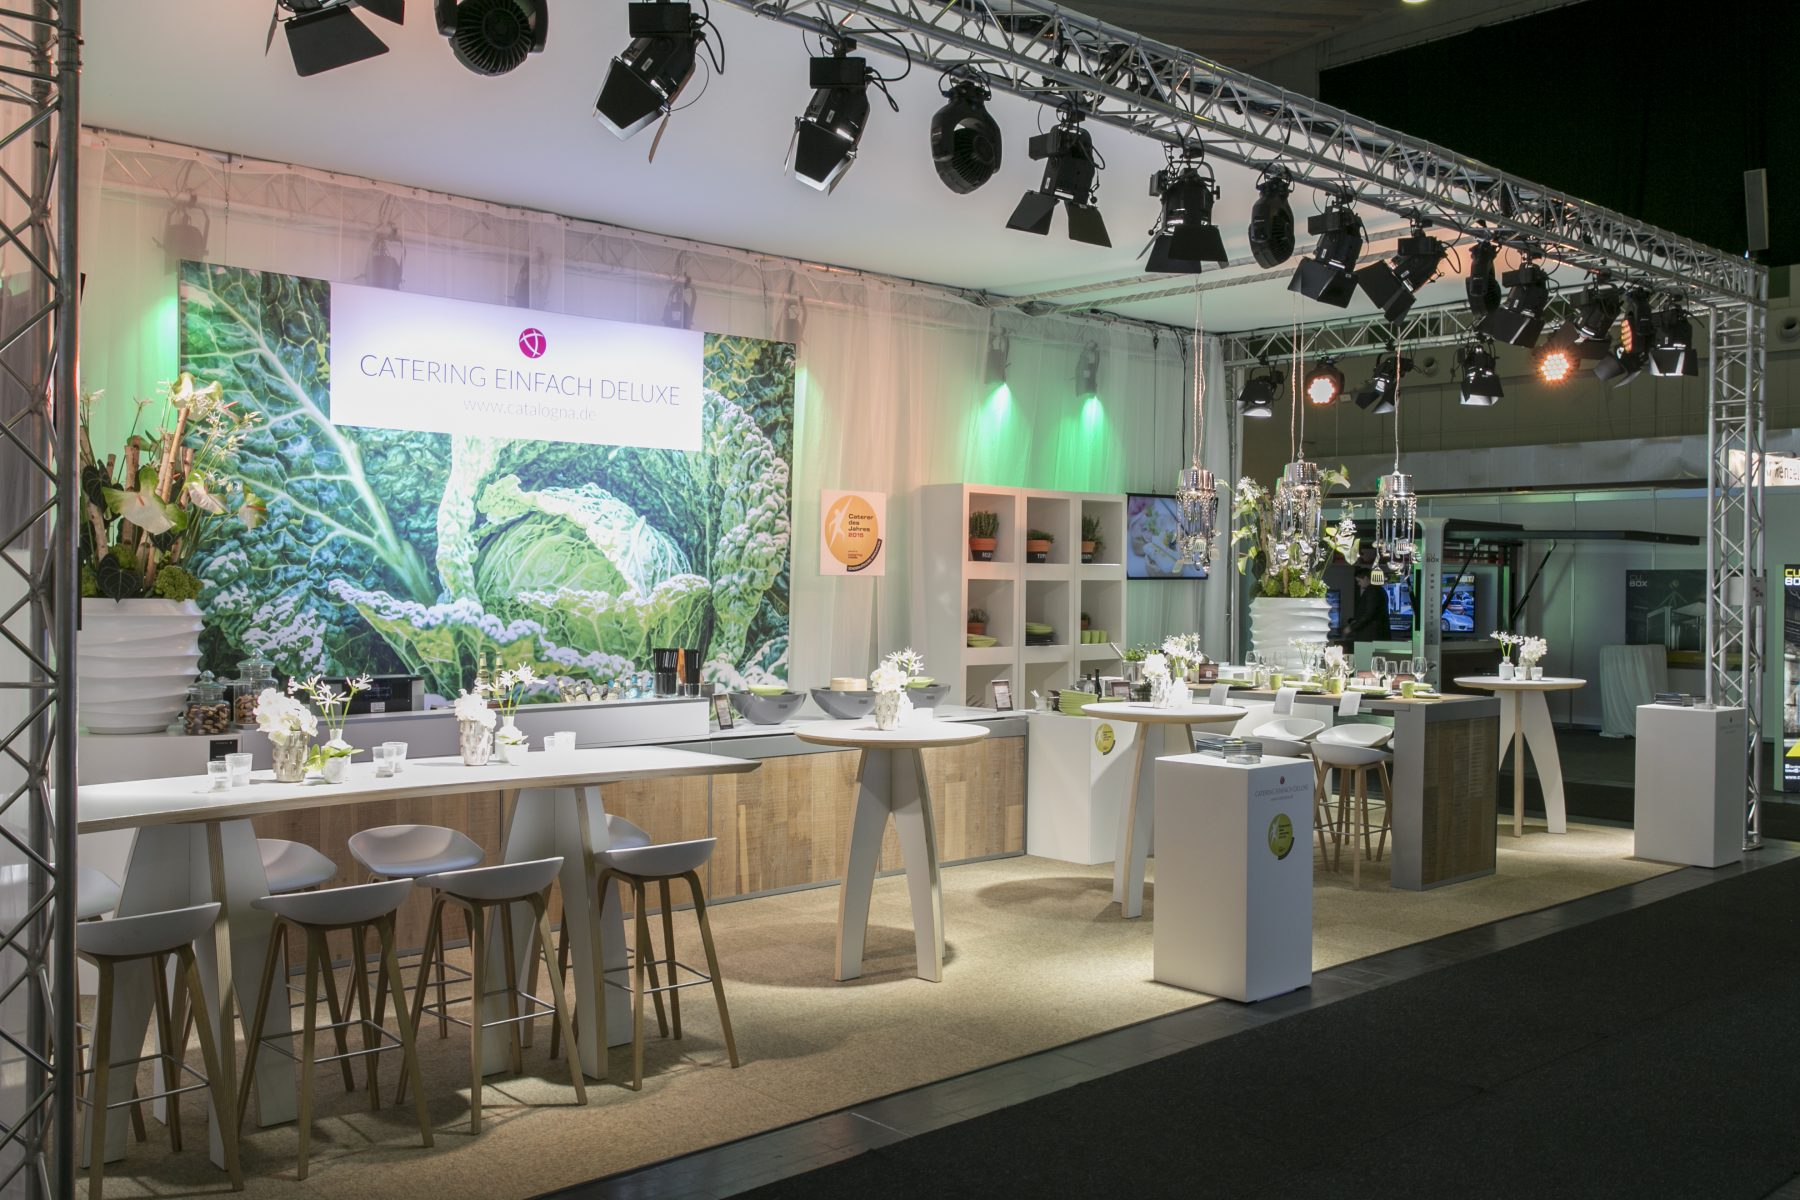 catalogna BOE 209 - Messe